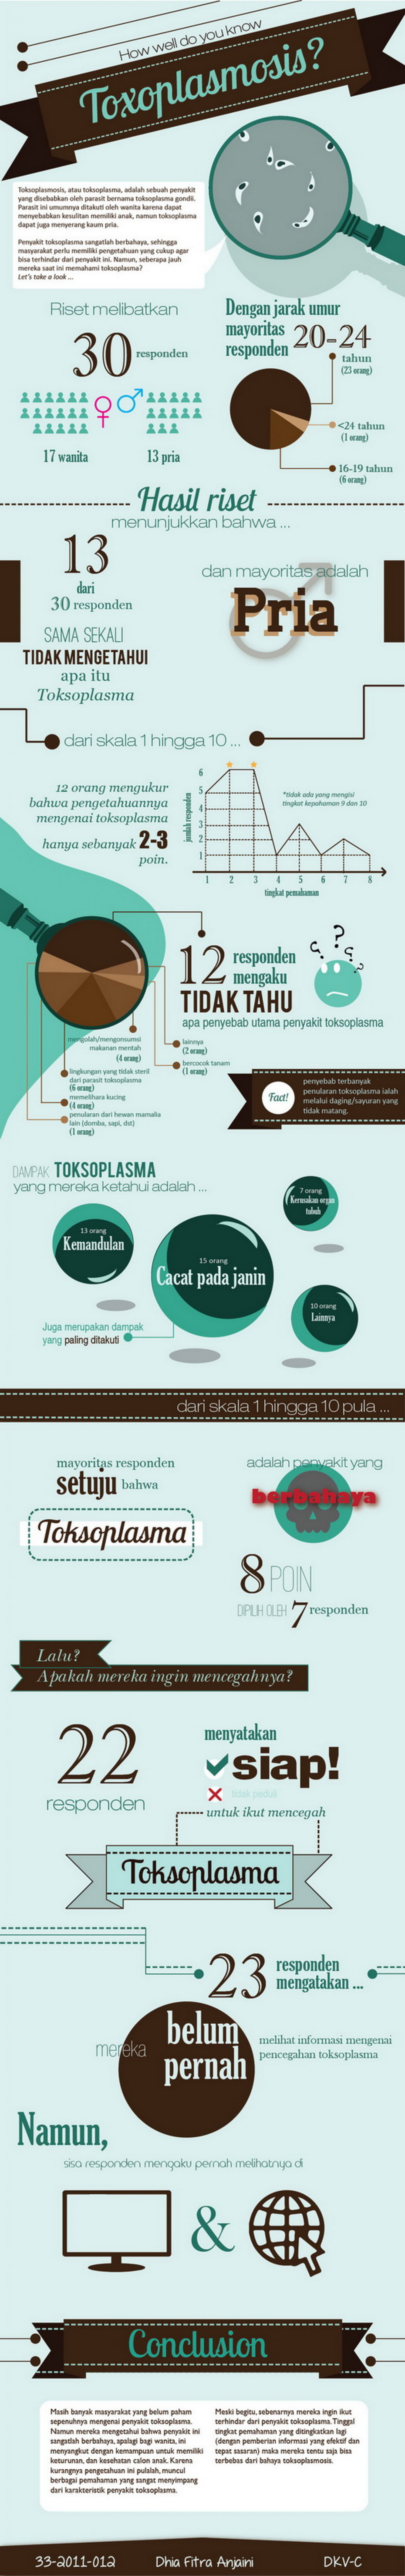 How Well Do You Know Toxoplasmosis? Infographic